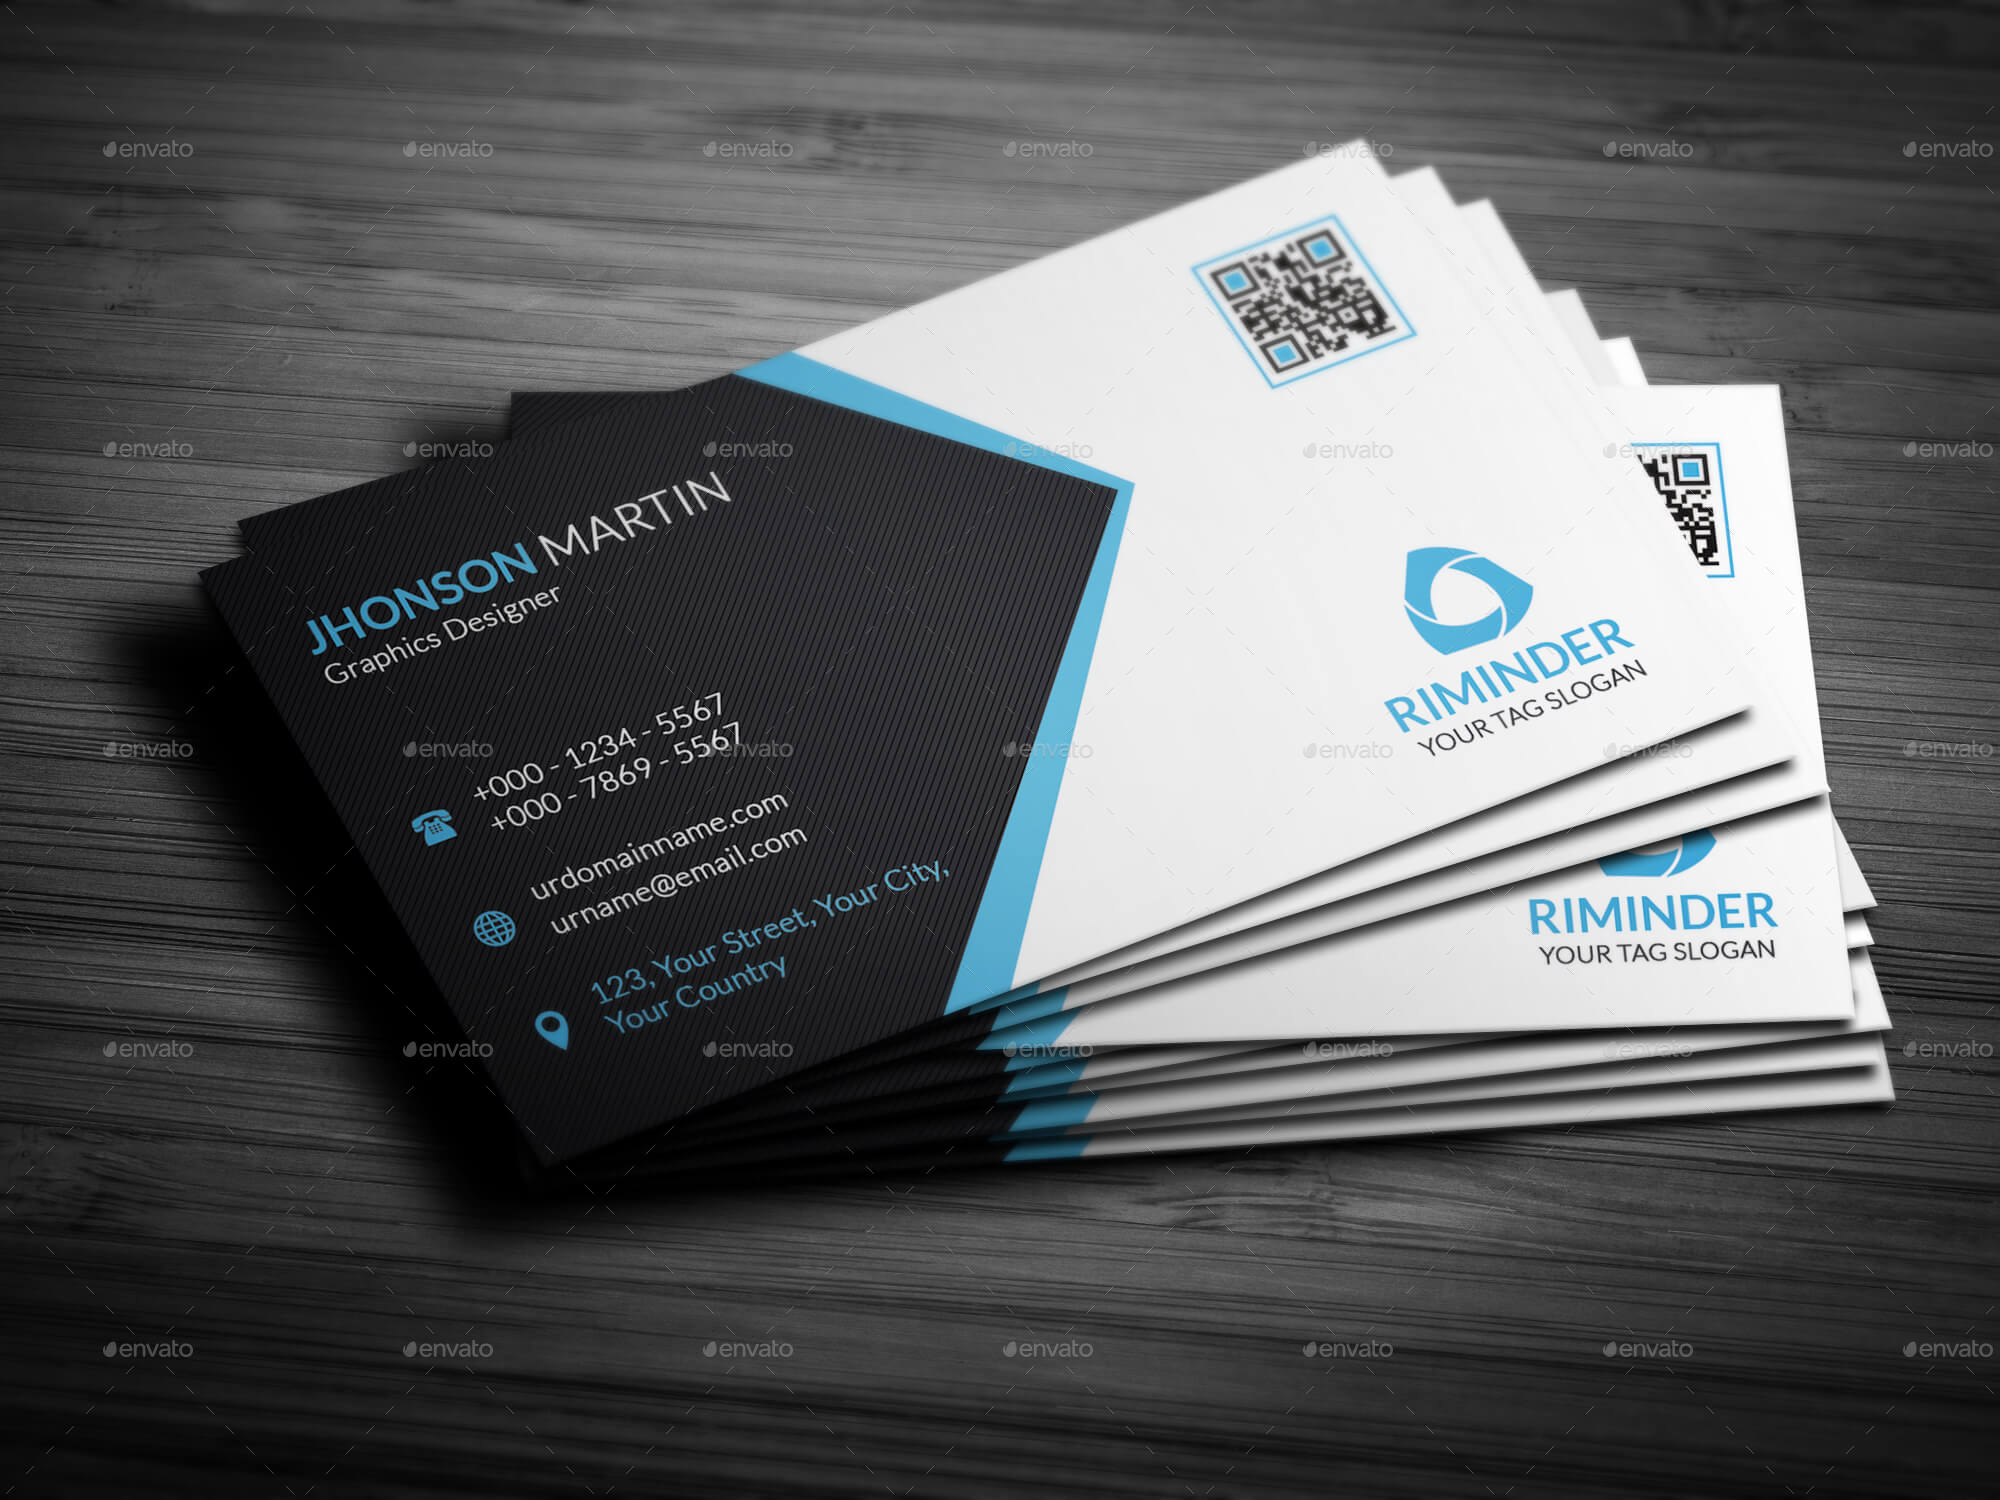 design outstanding 2side business card in 24 hrs for $5 seoclerks